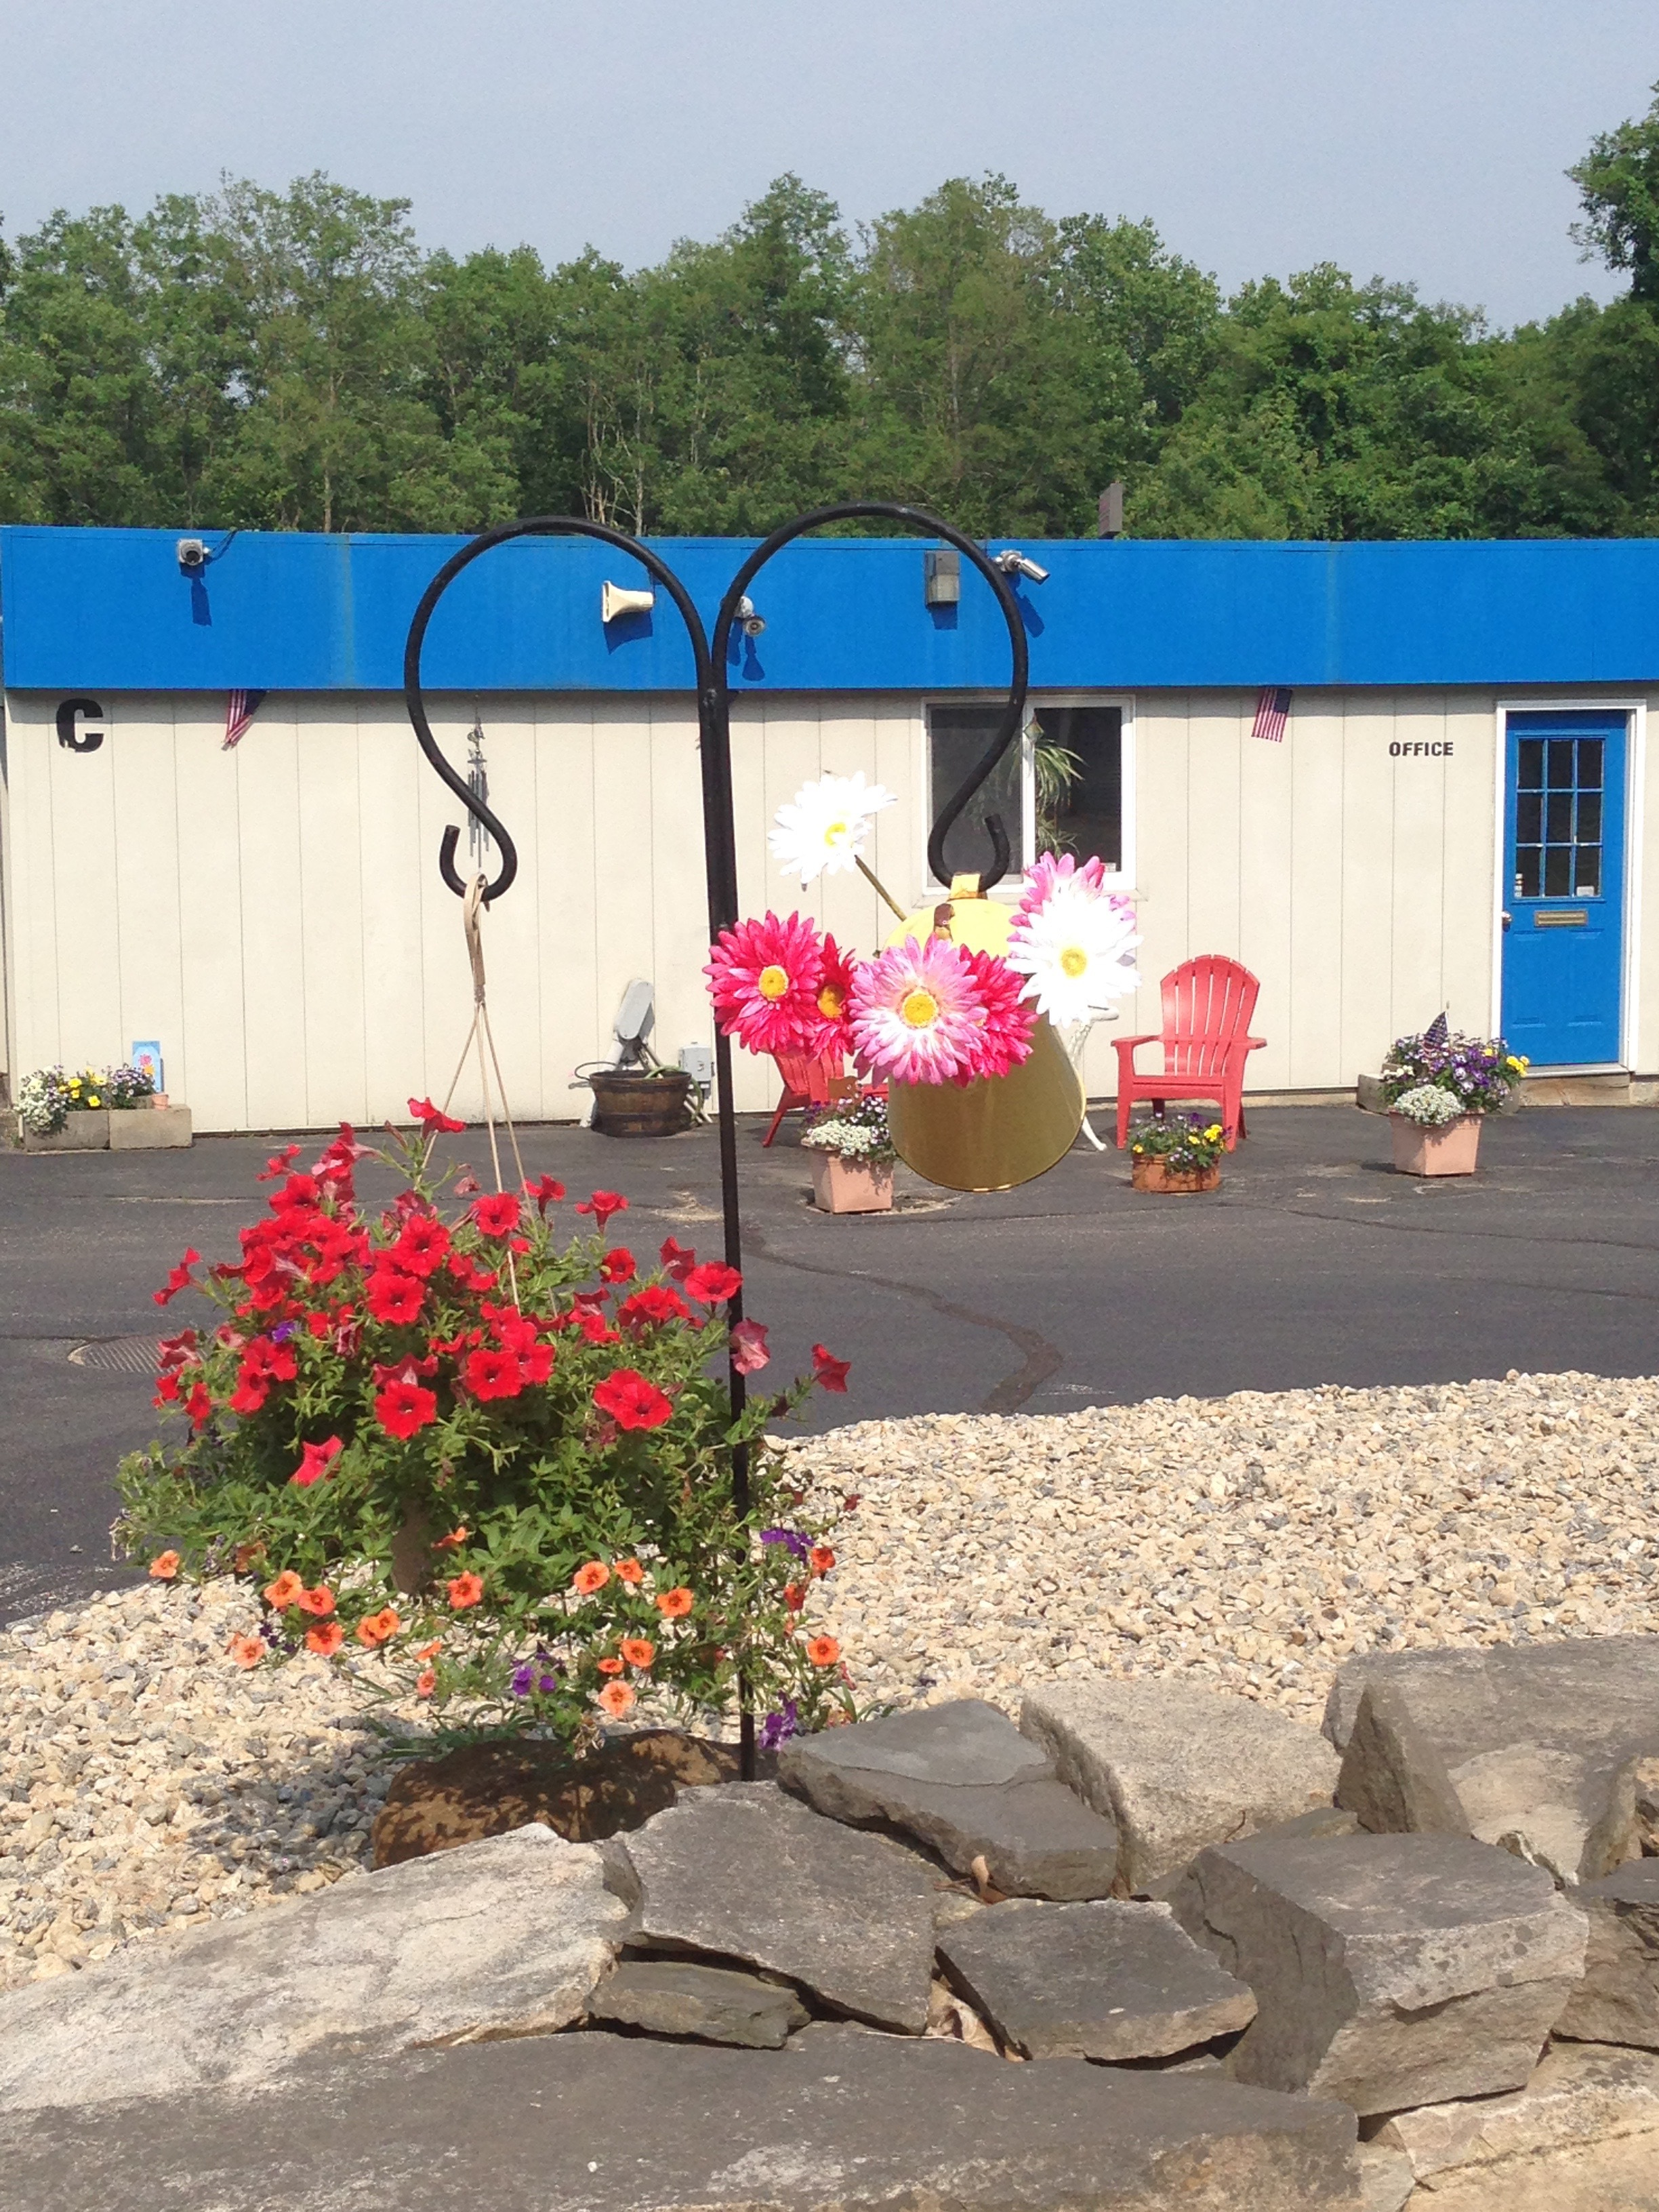 Storage houses for commercial and residential purposes in Norwich, CT